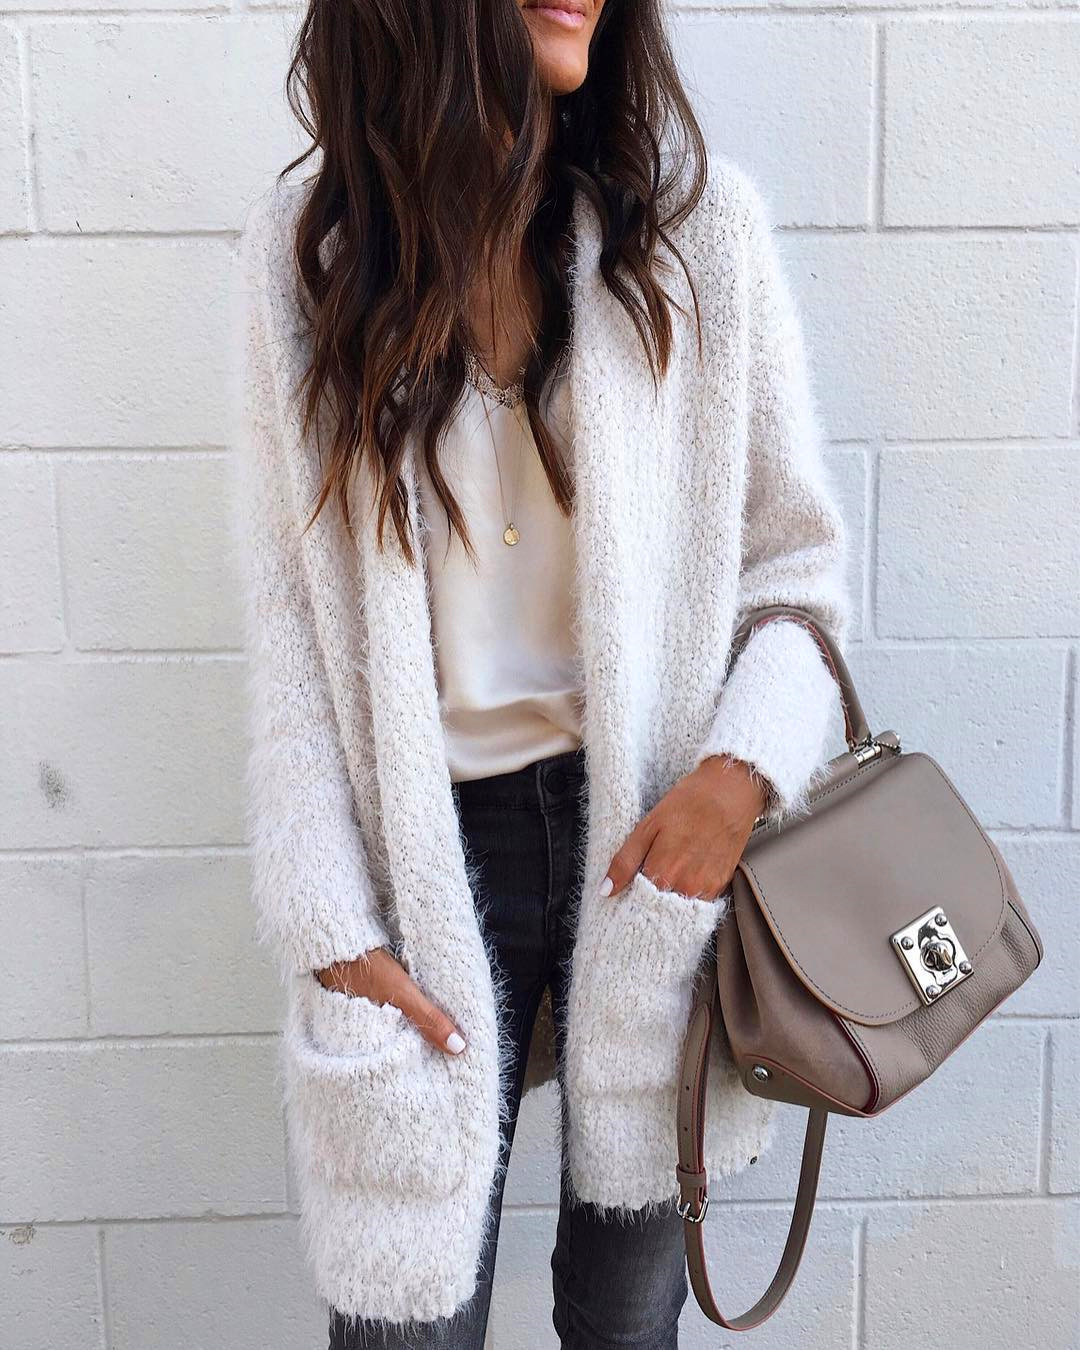 50+ Glamorous Fall Outfits To Inspire Yourself